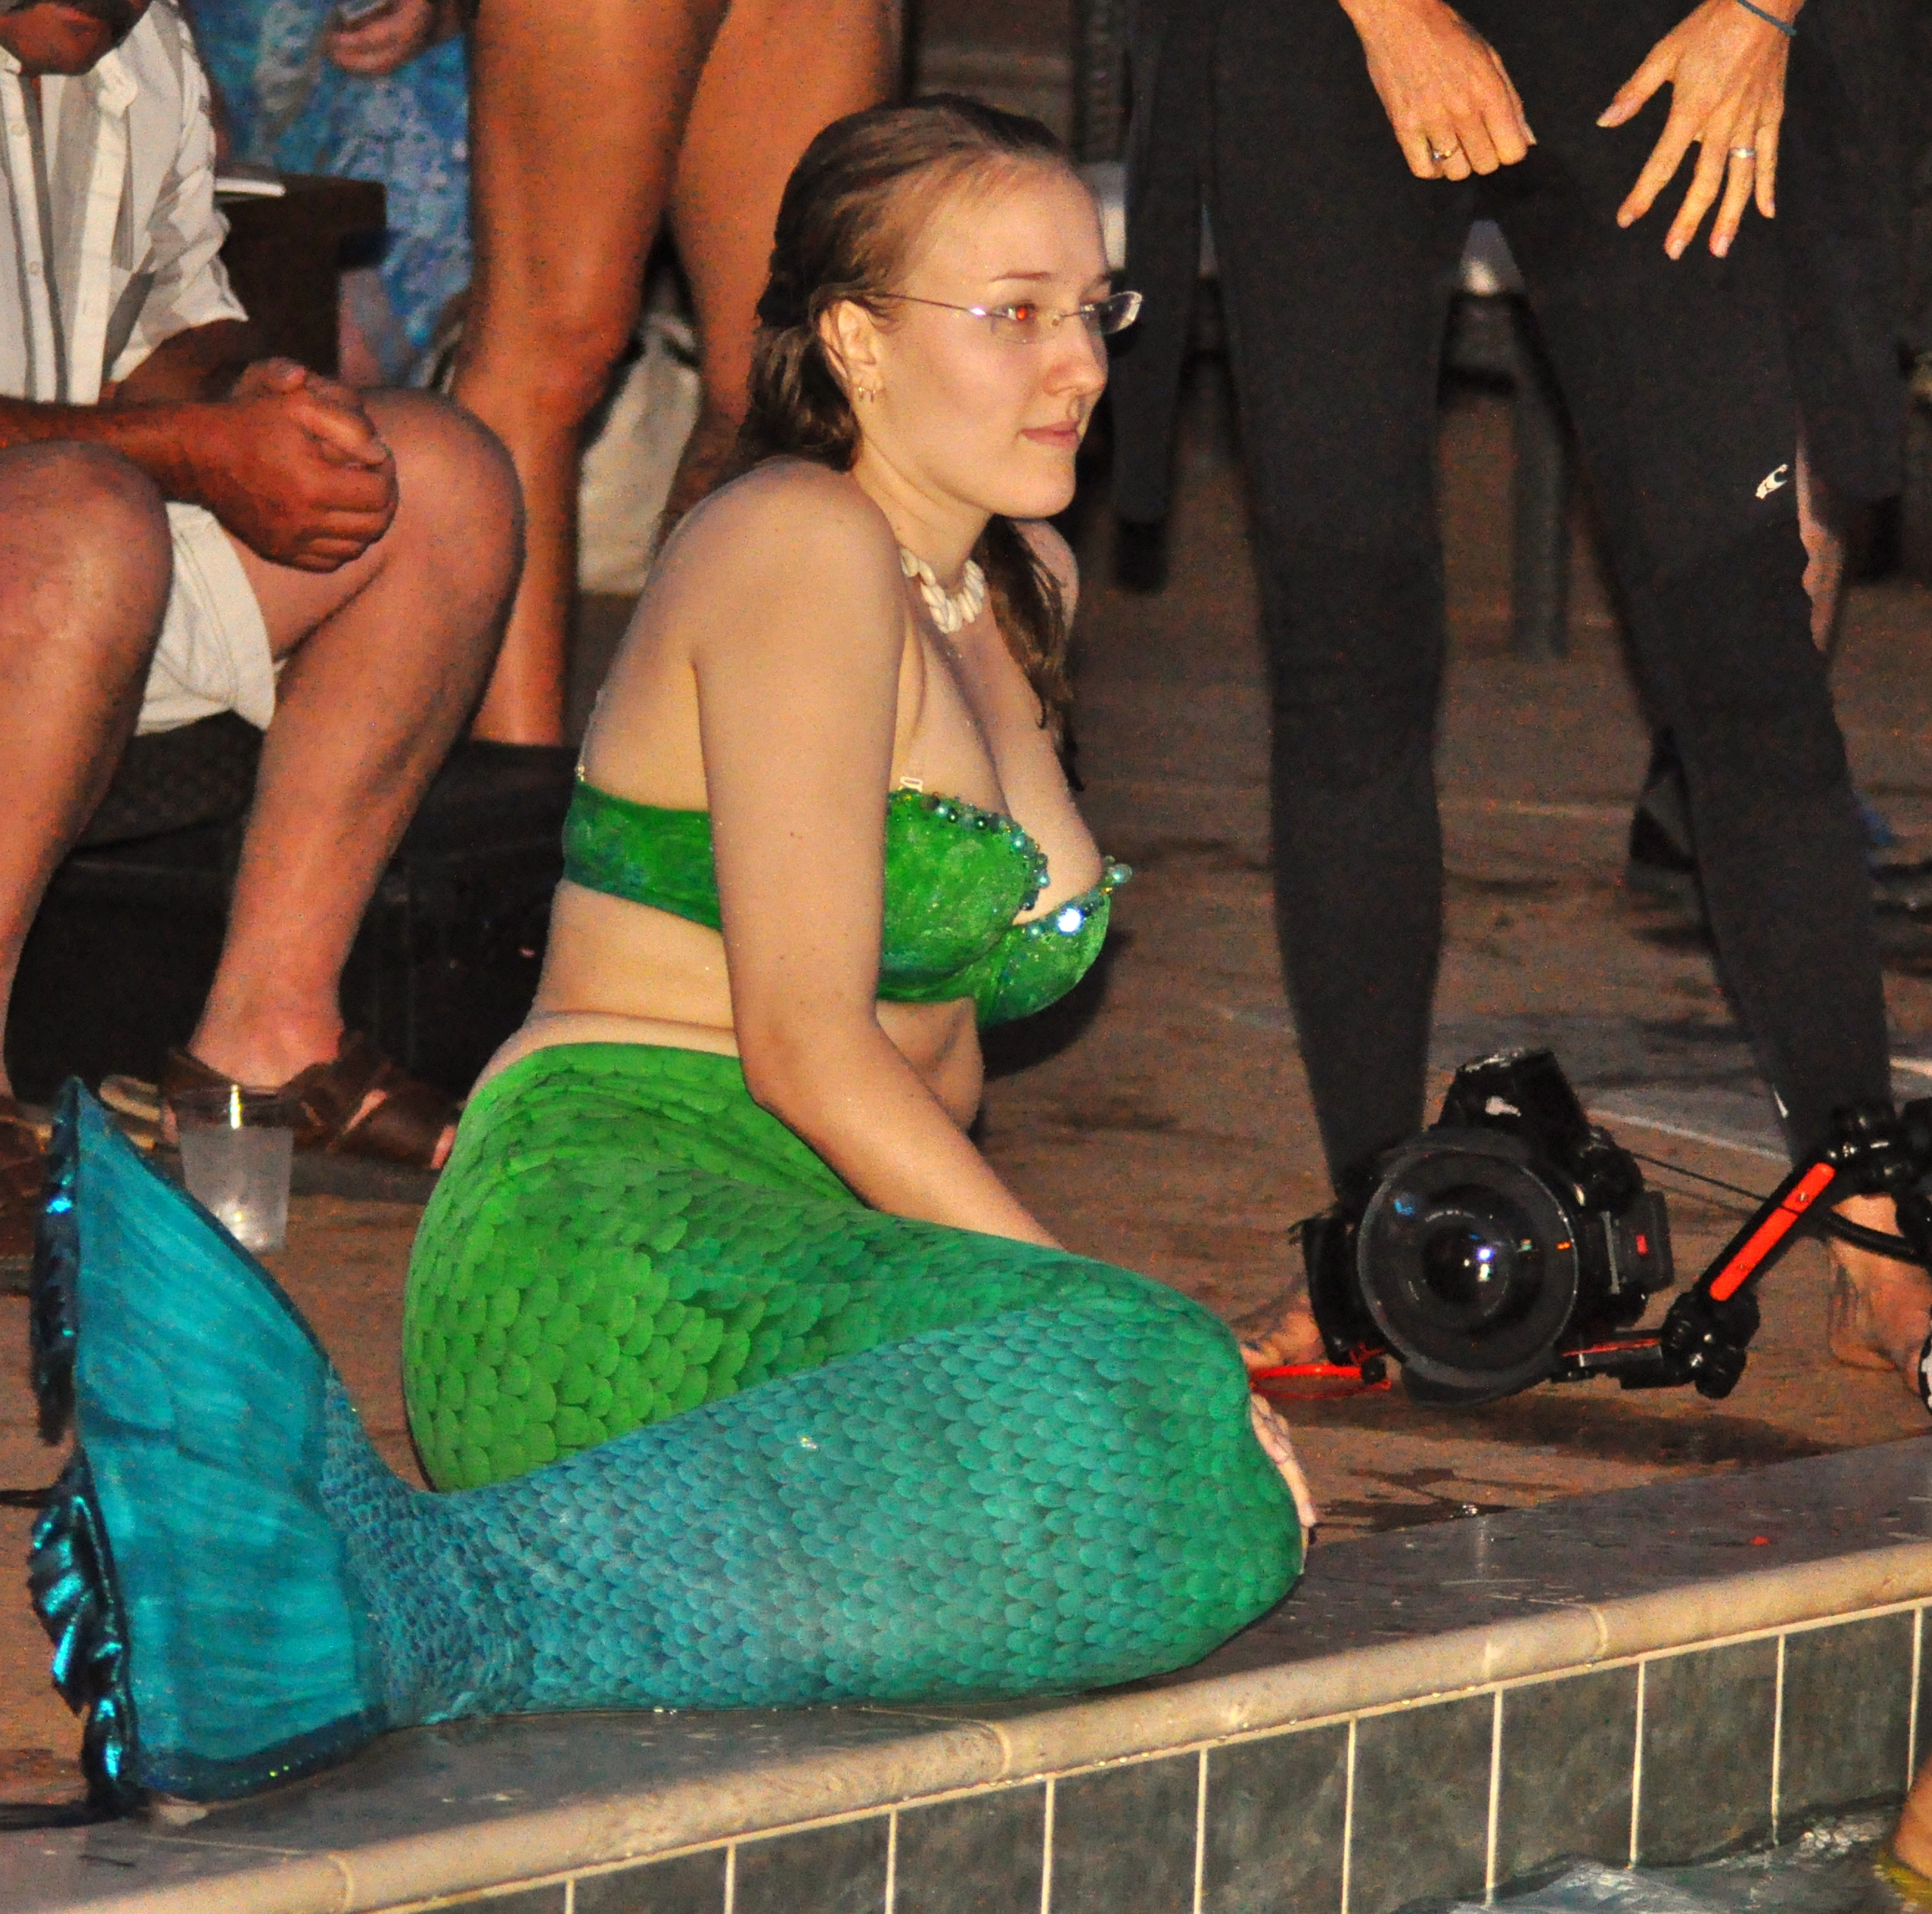 Mermaid Convention Photography Photo #290